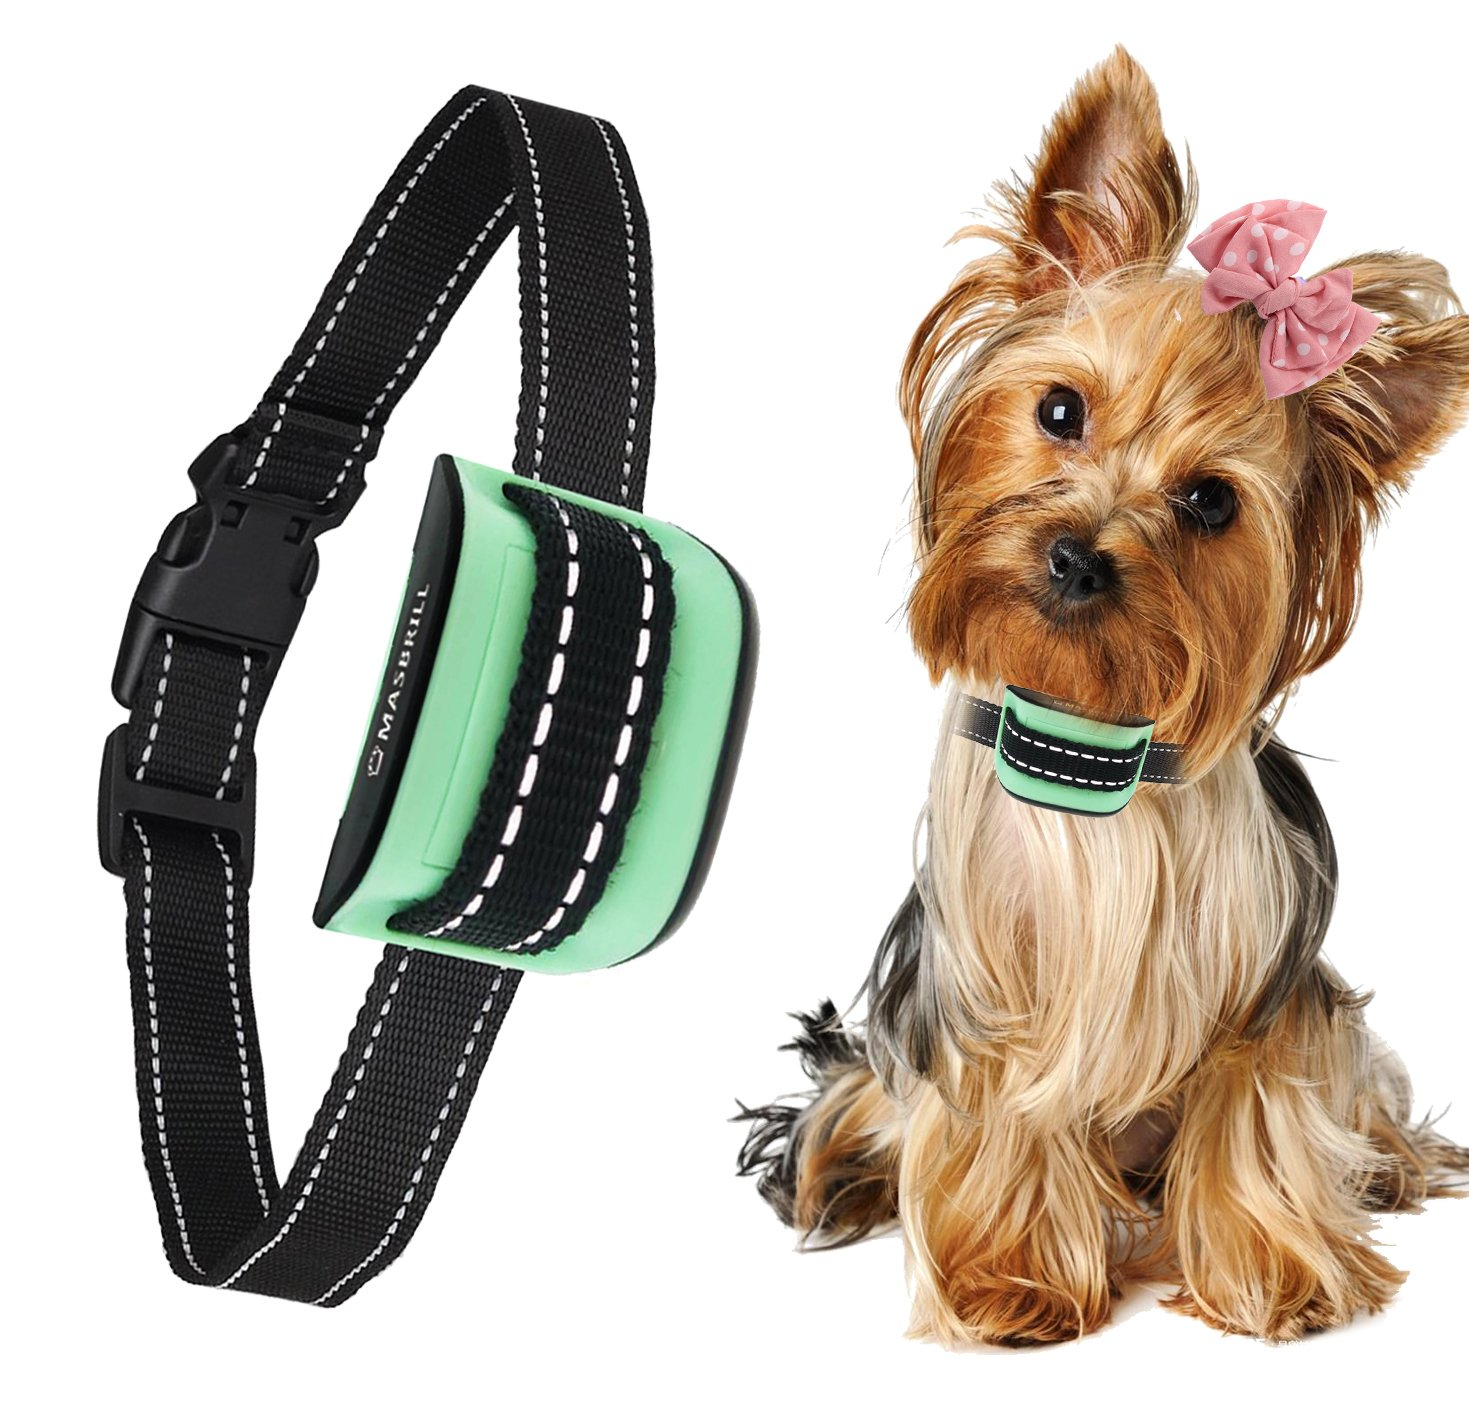 MASBRIL Dog Bark Collar - Upgrade 2019 Safe No Bark Control Device for Tiny Small Medium Dog-Stop Barking by Sound and Vibration- No Shock Human Way-Best Choice for Dog Lovers by MASBRILL